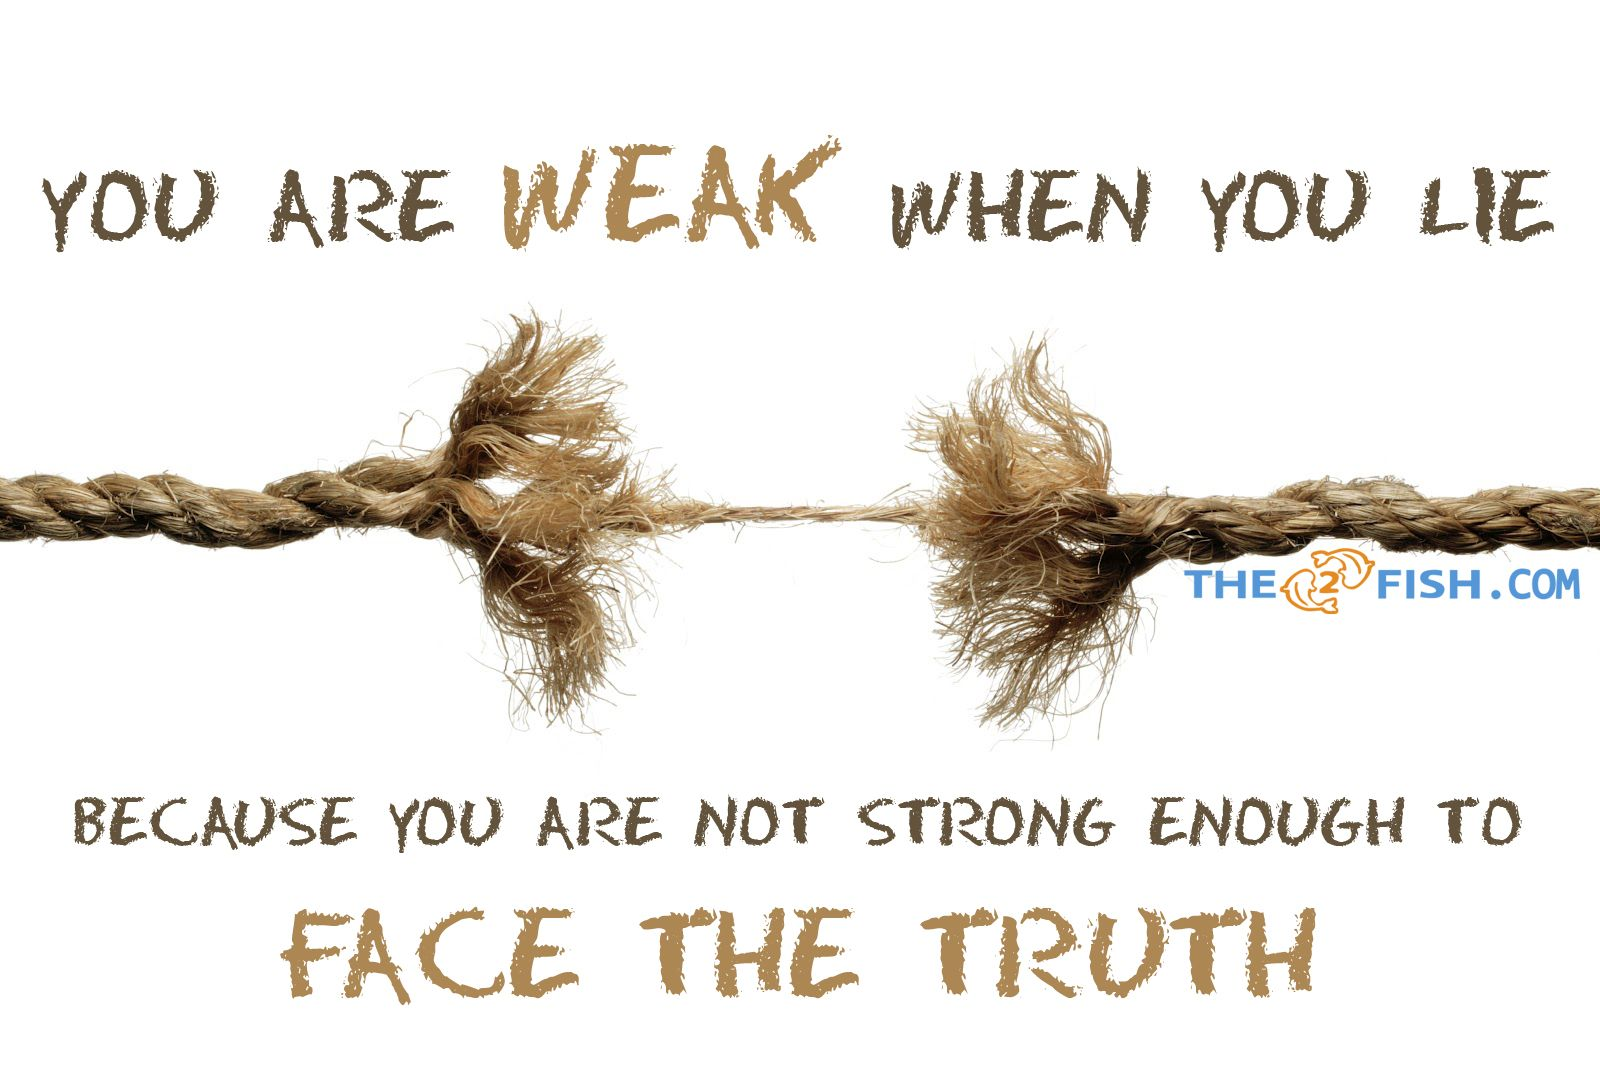 You Are Weak When You Lie Bacause You Are Not Strong Enough To